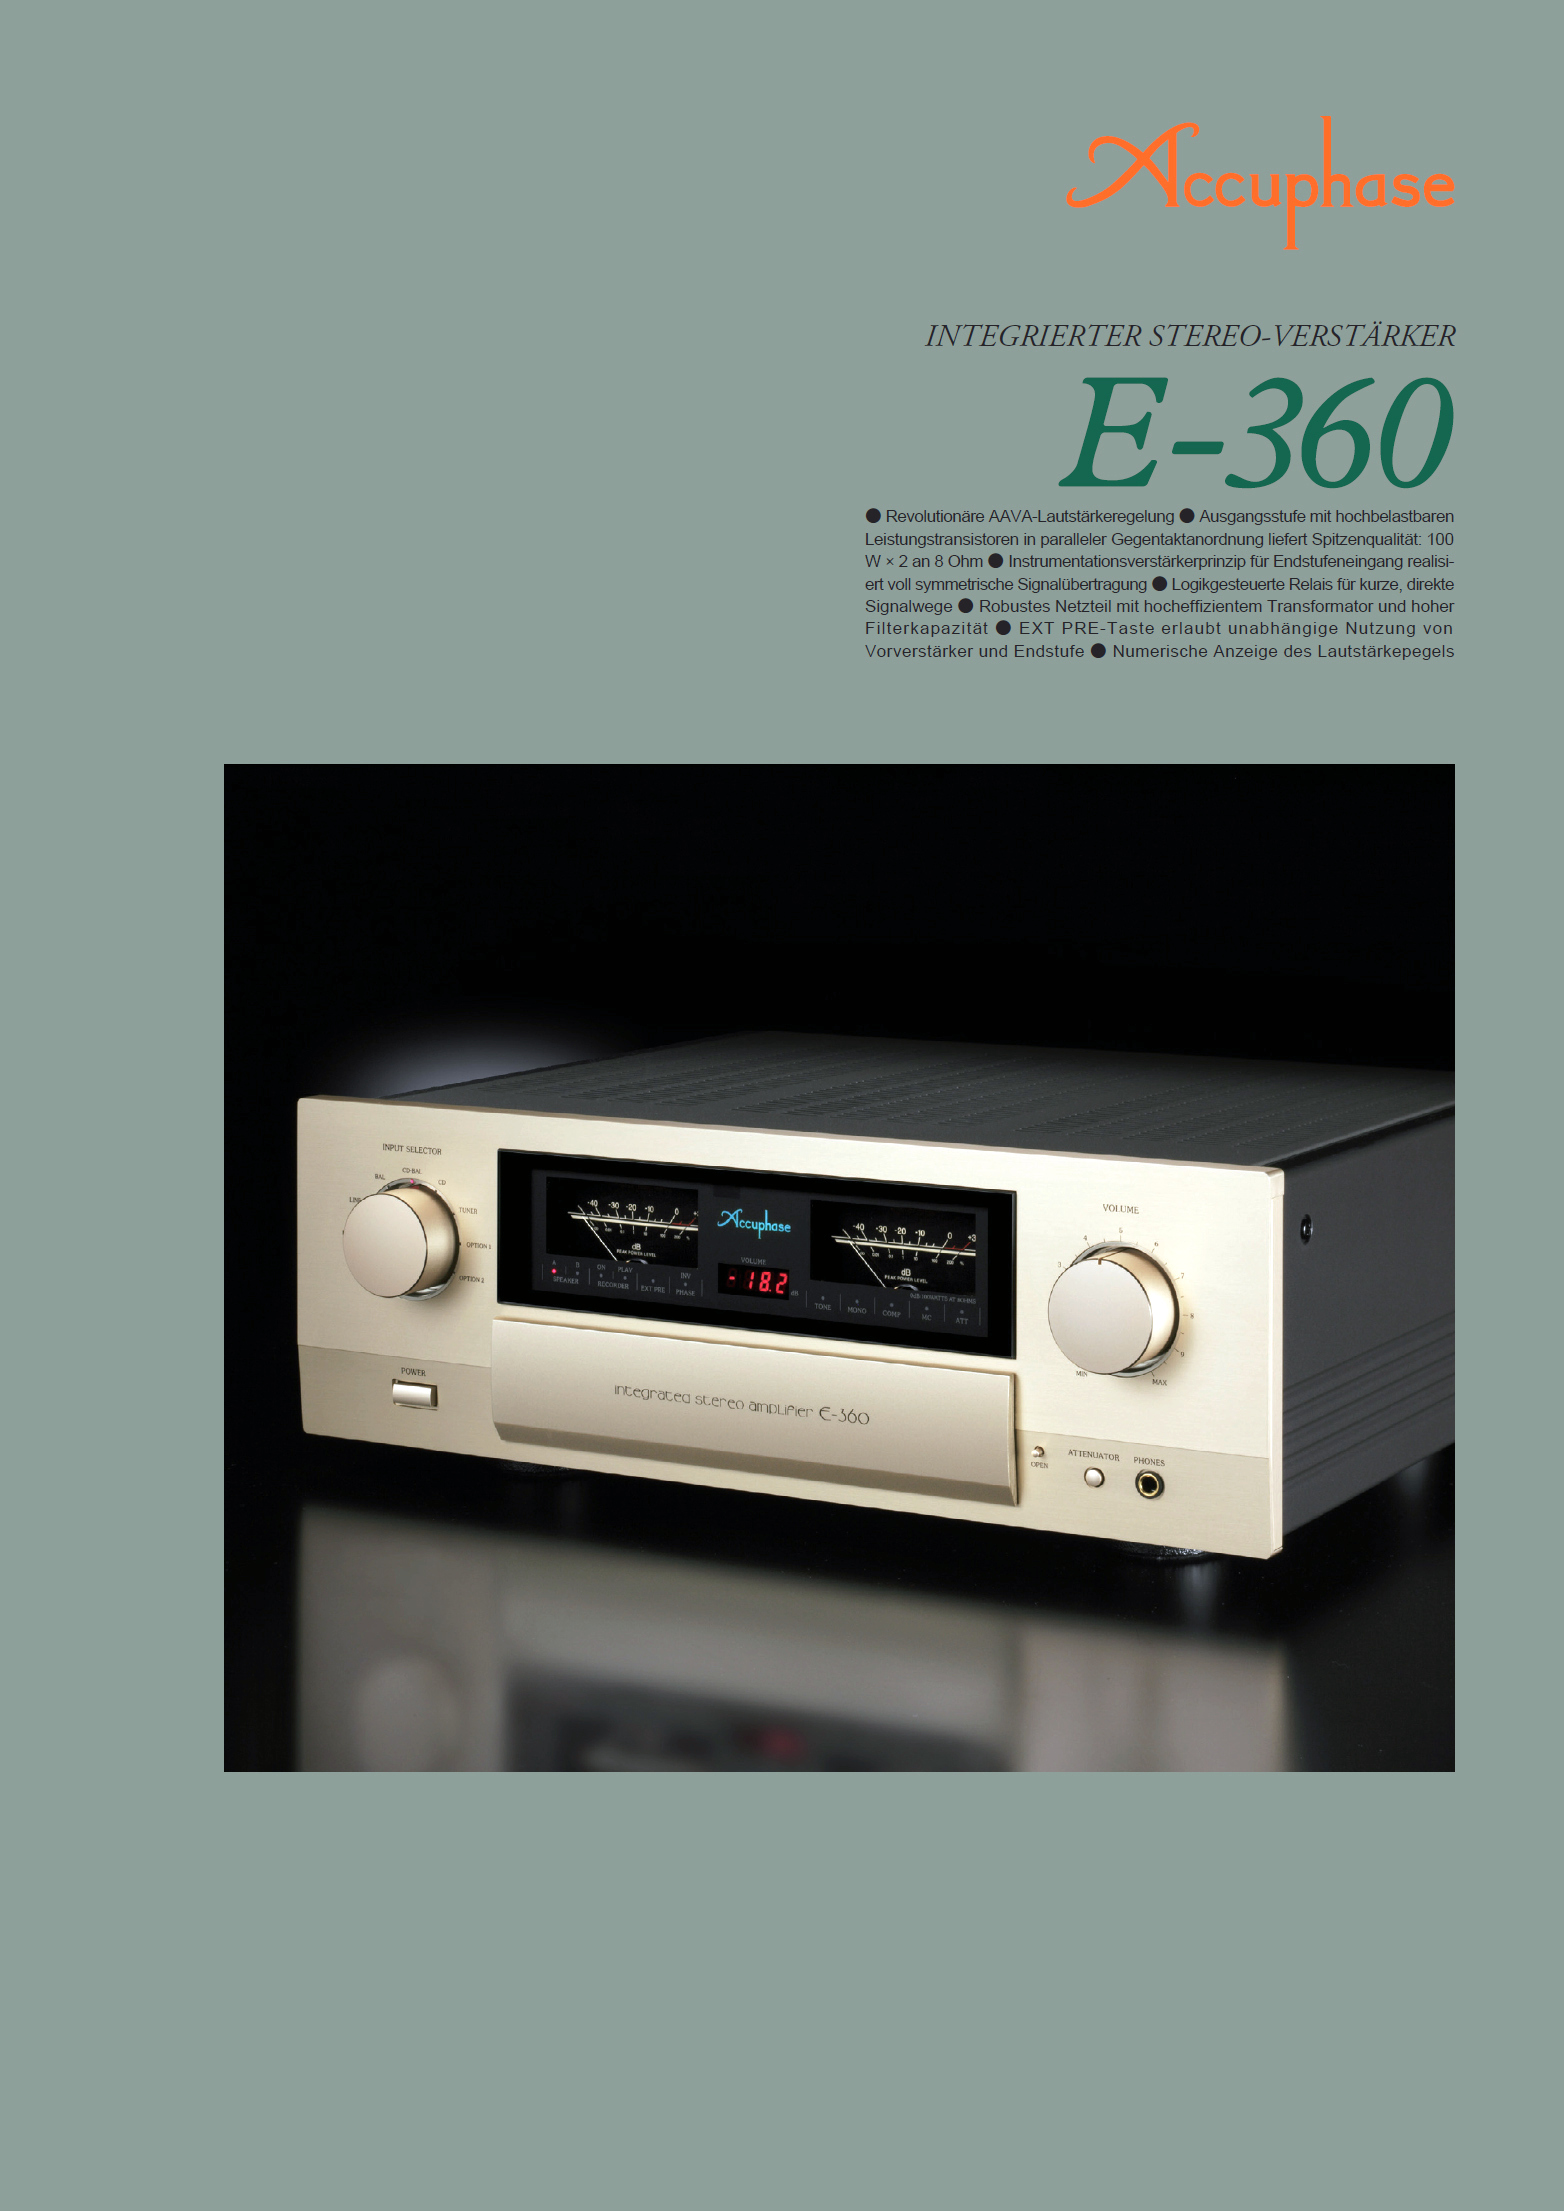 Accuphase E-360-Prospekt-1.jpg